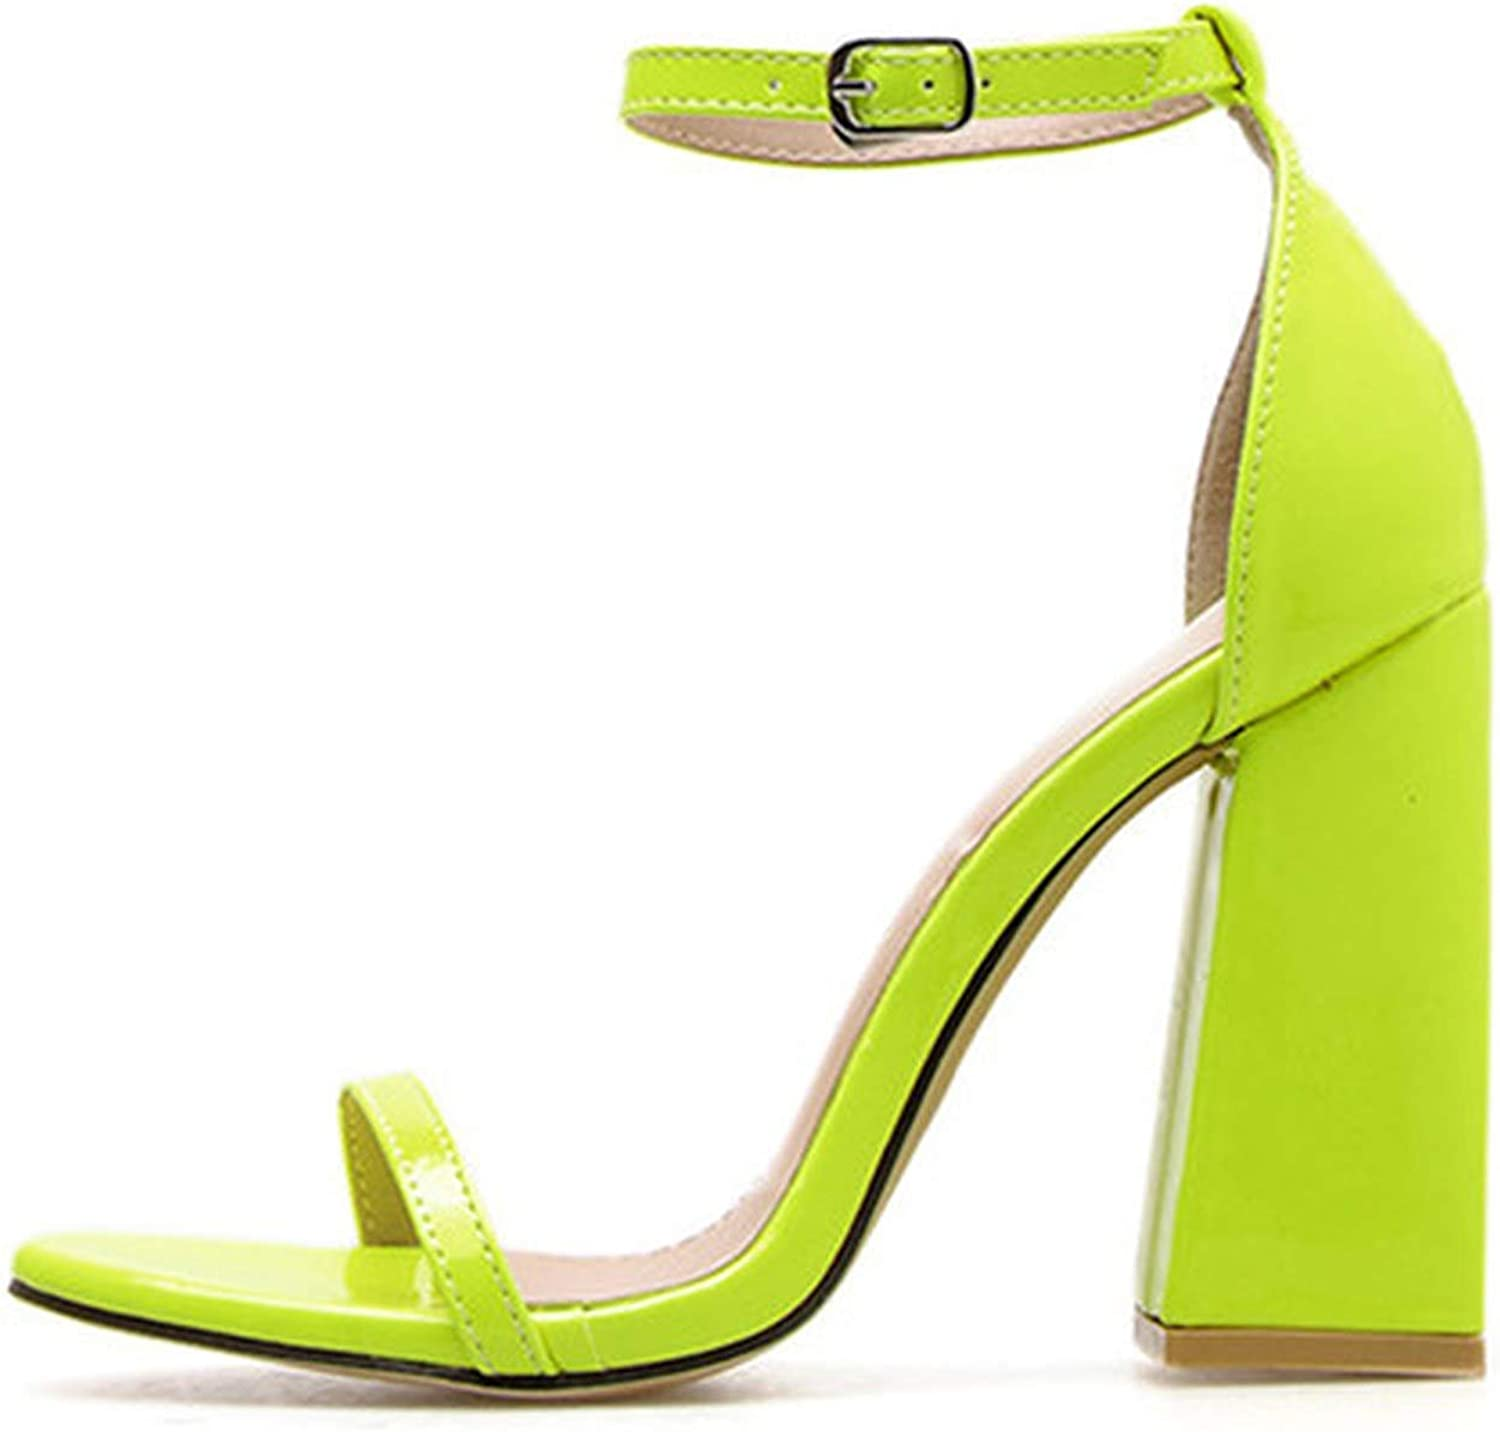 Patent Leather Fluorescent Green Buckle Strap Women's Sandals shoes Sexy Party Square High Heels Sandals